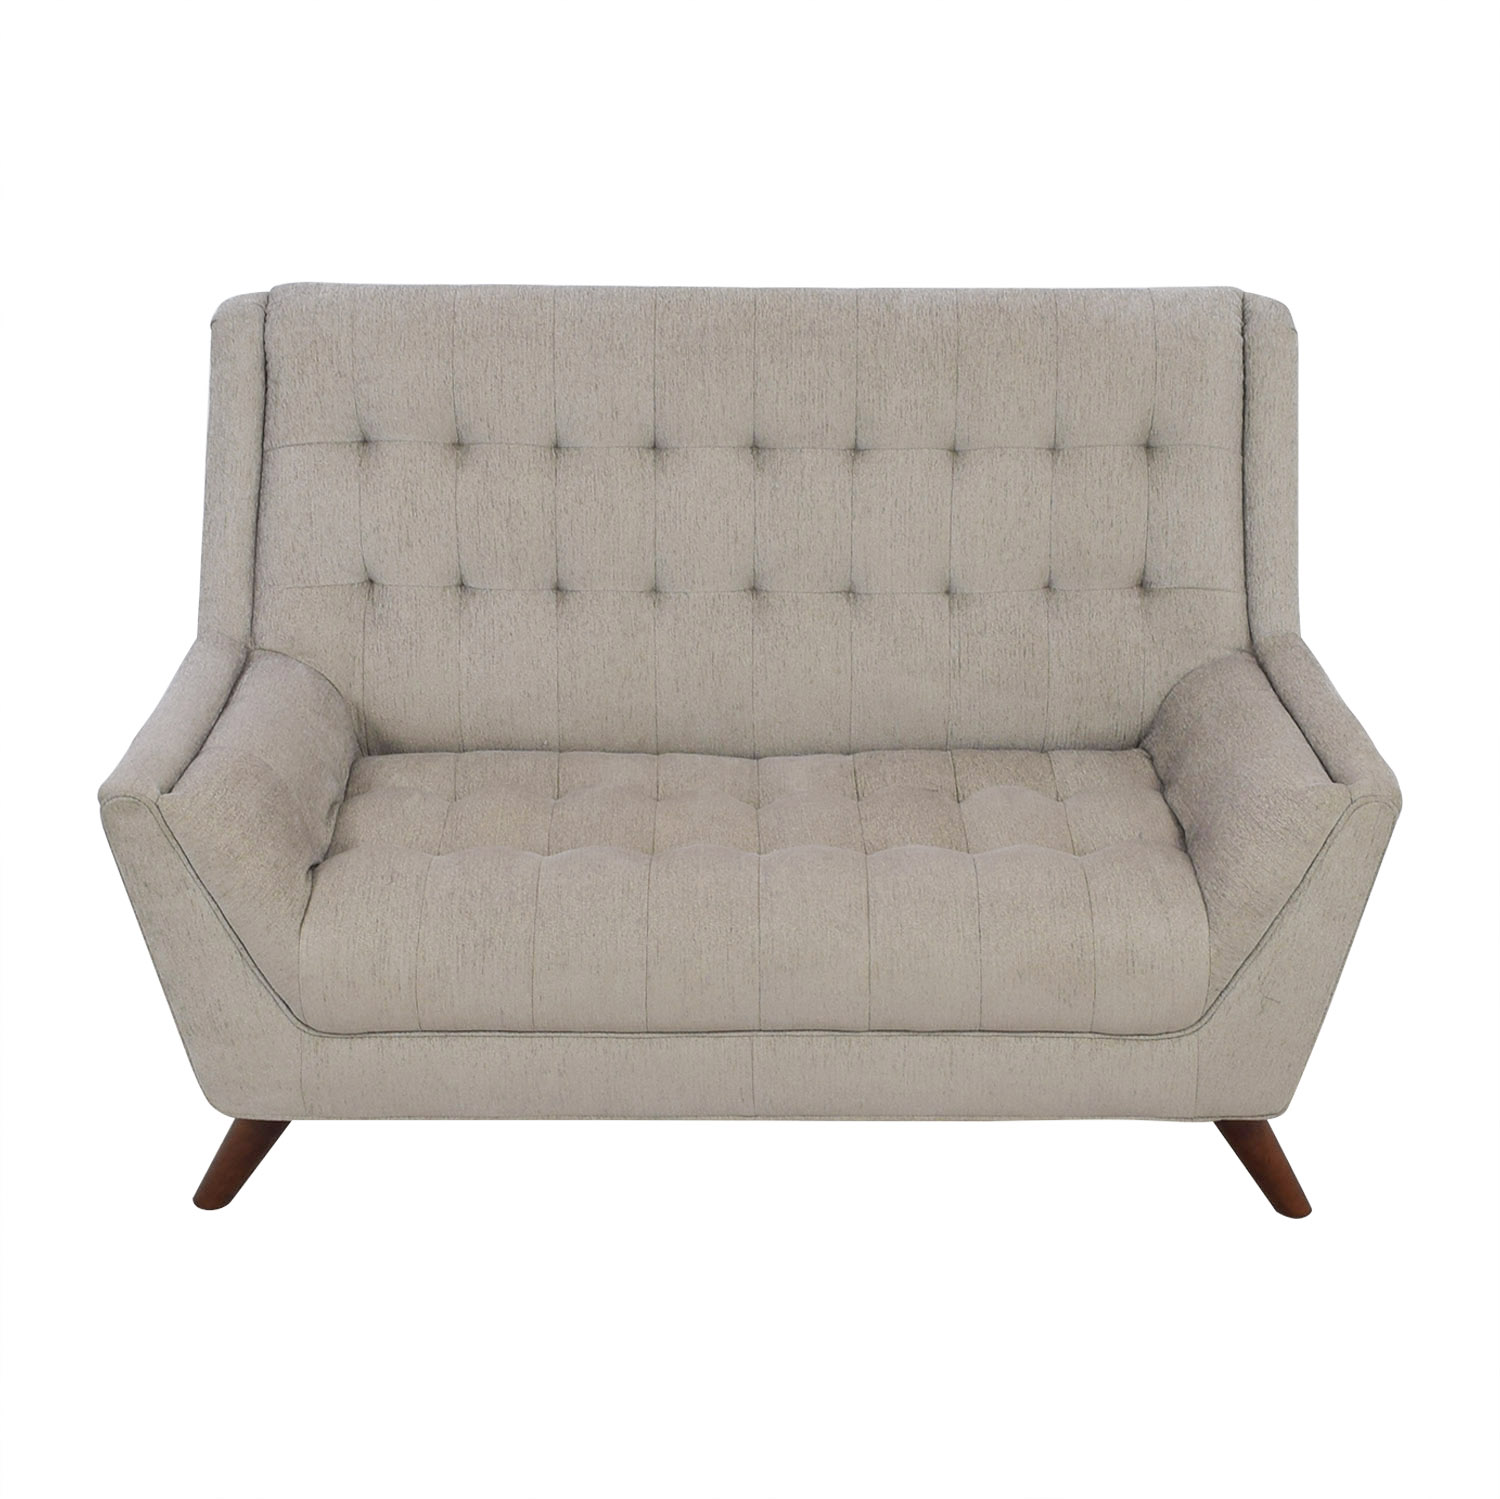 curved loveseats sofa size and of contemporary grey full briarwood tufted microfiber loveseat sofas